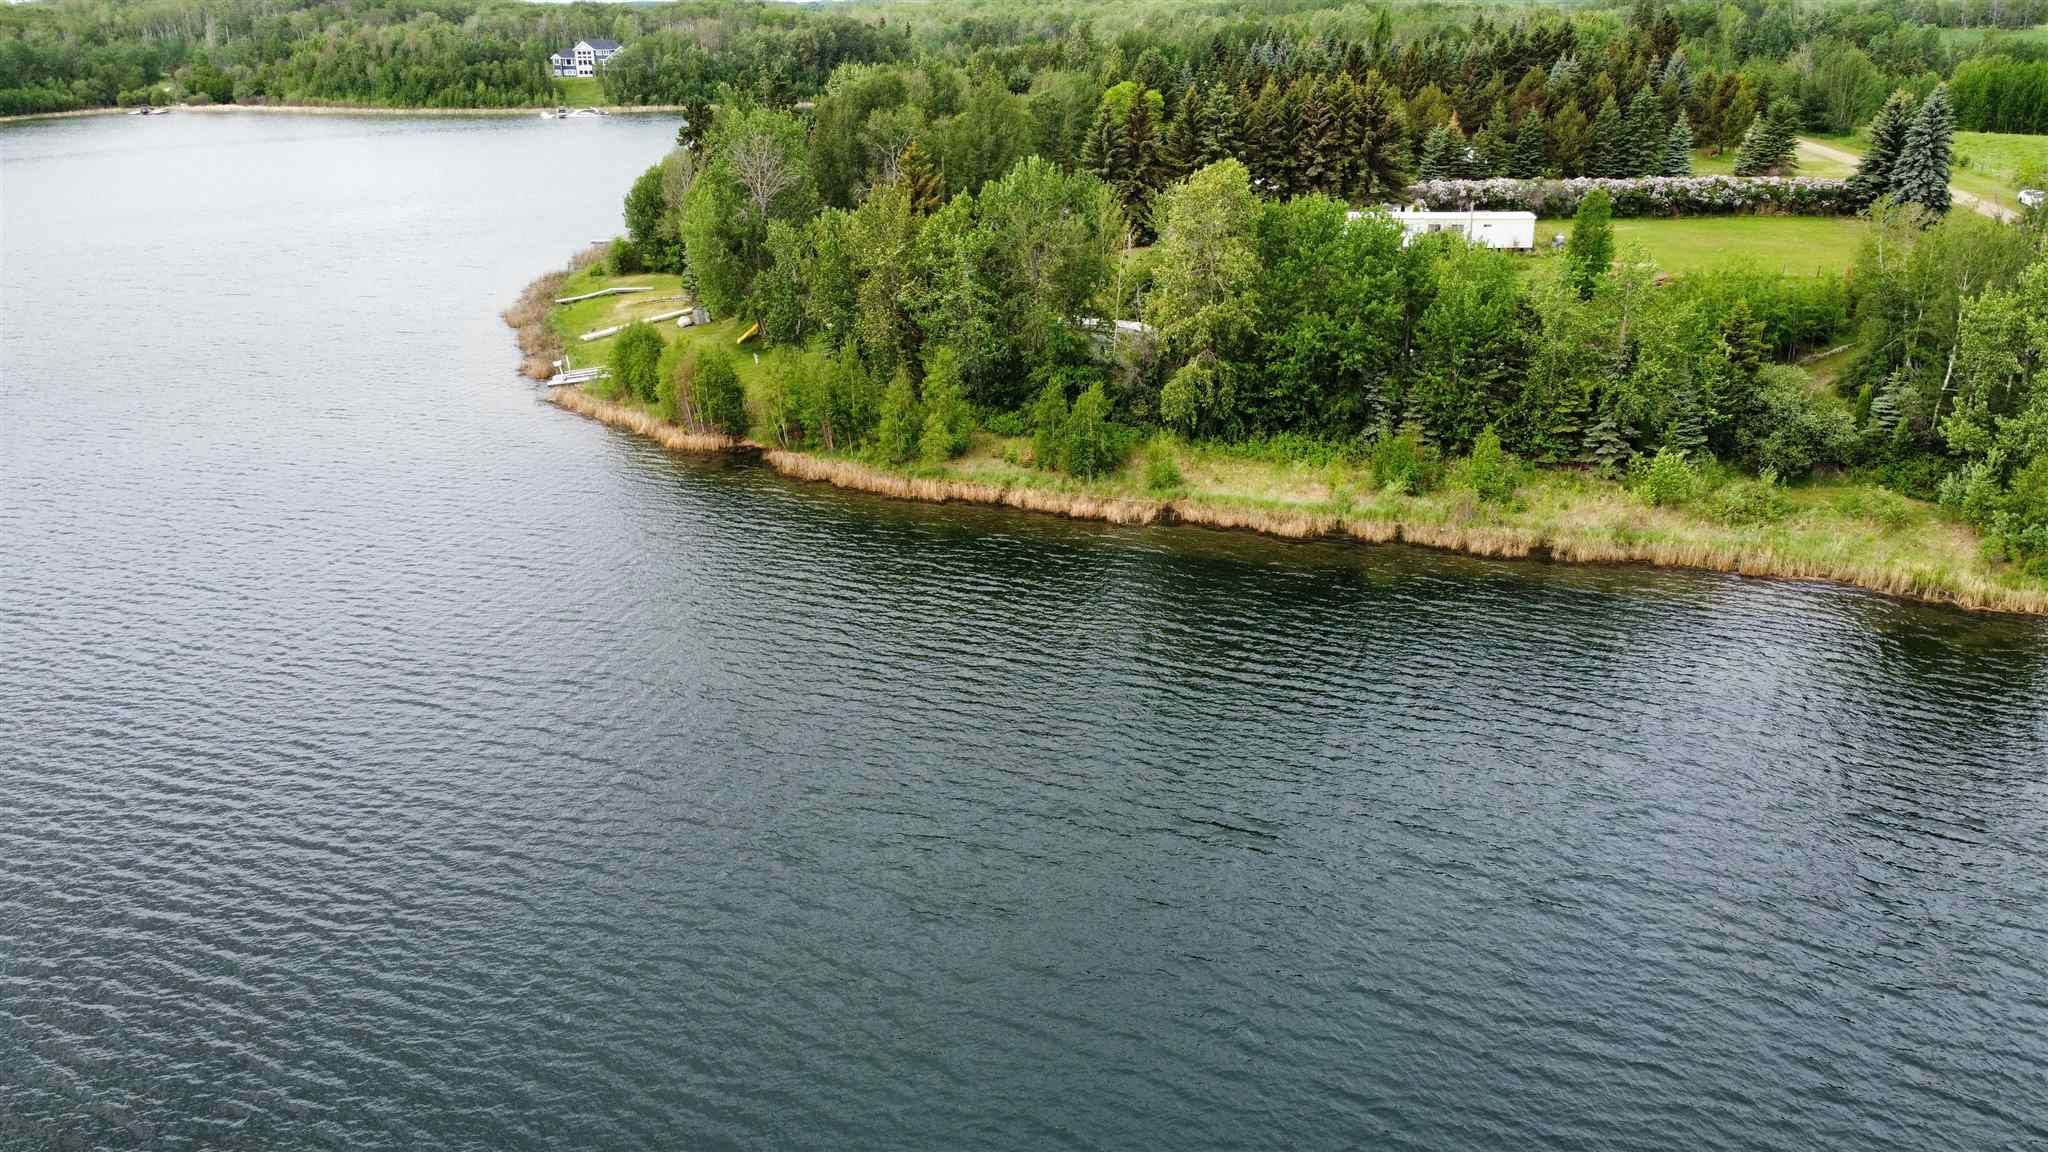 Main Photo: 9 52215 RGE RD 24: Rural Parkland County Rural Land/Vacant Lot for sale : MLS®# E4248791